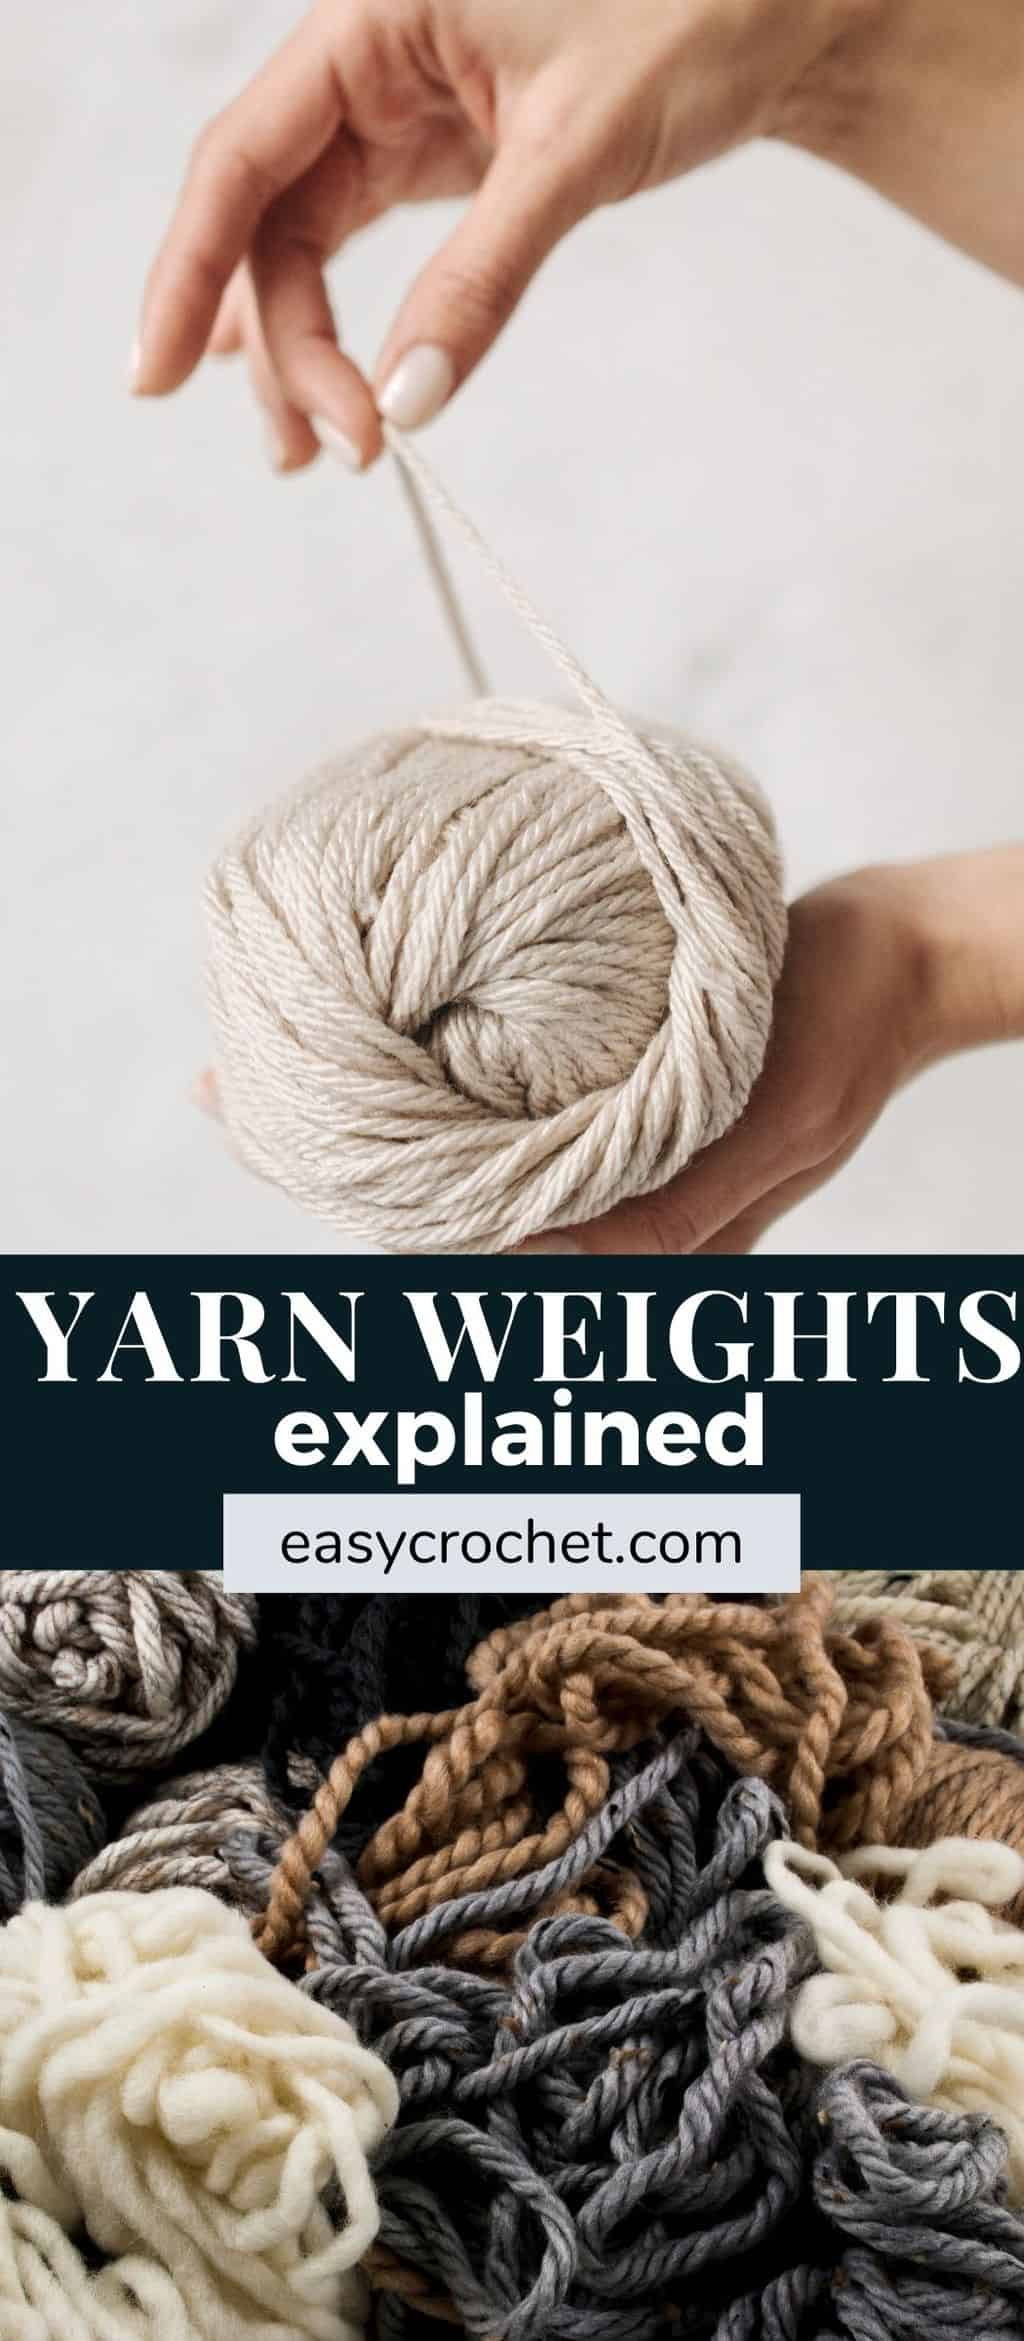 Yarn weights explained